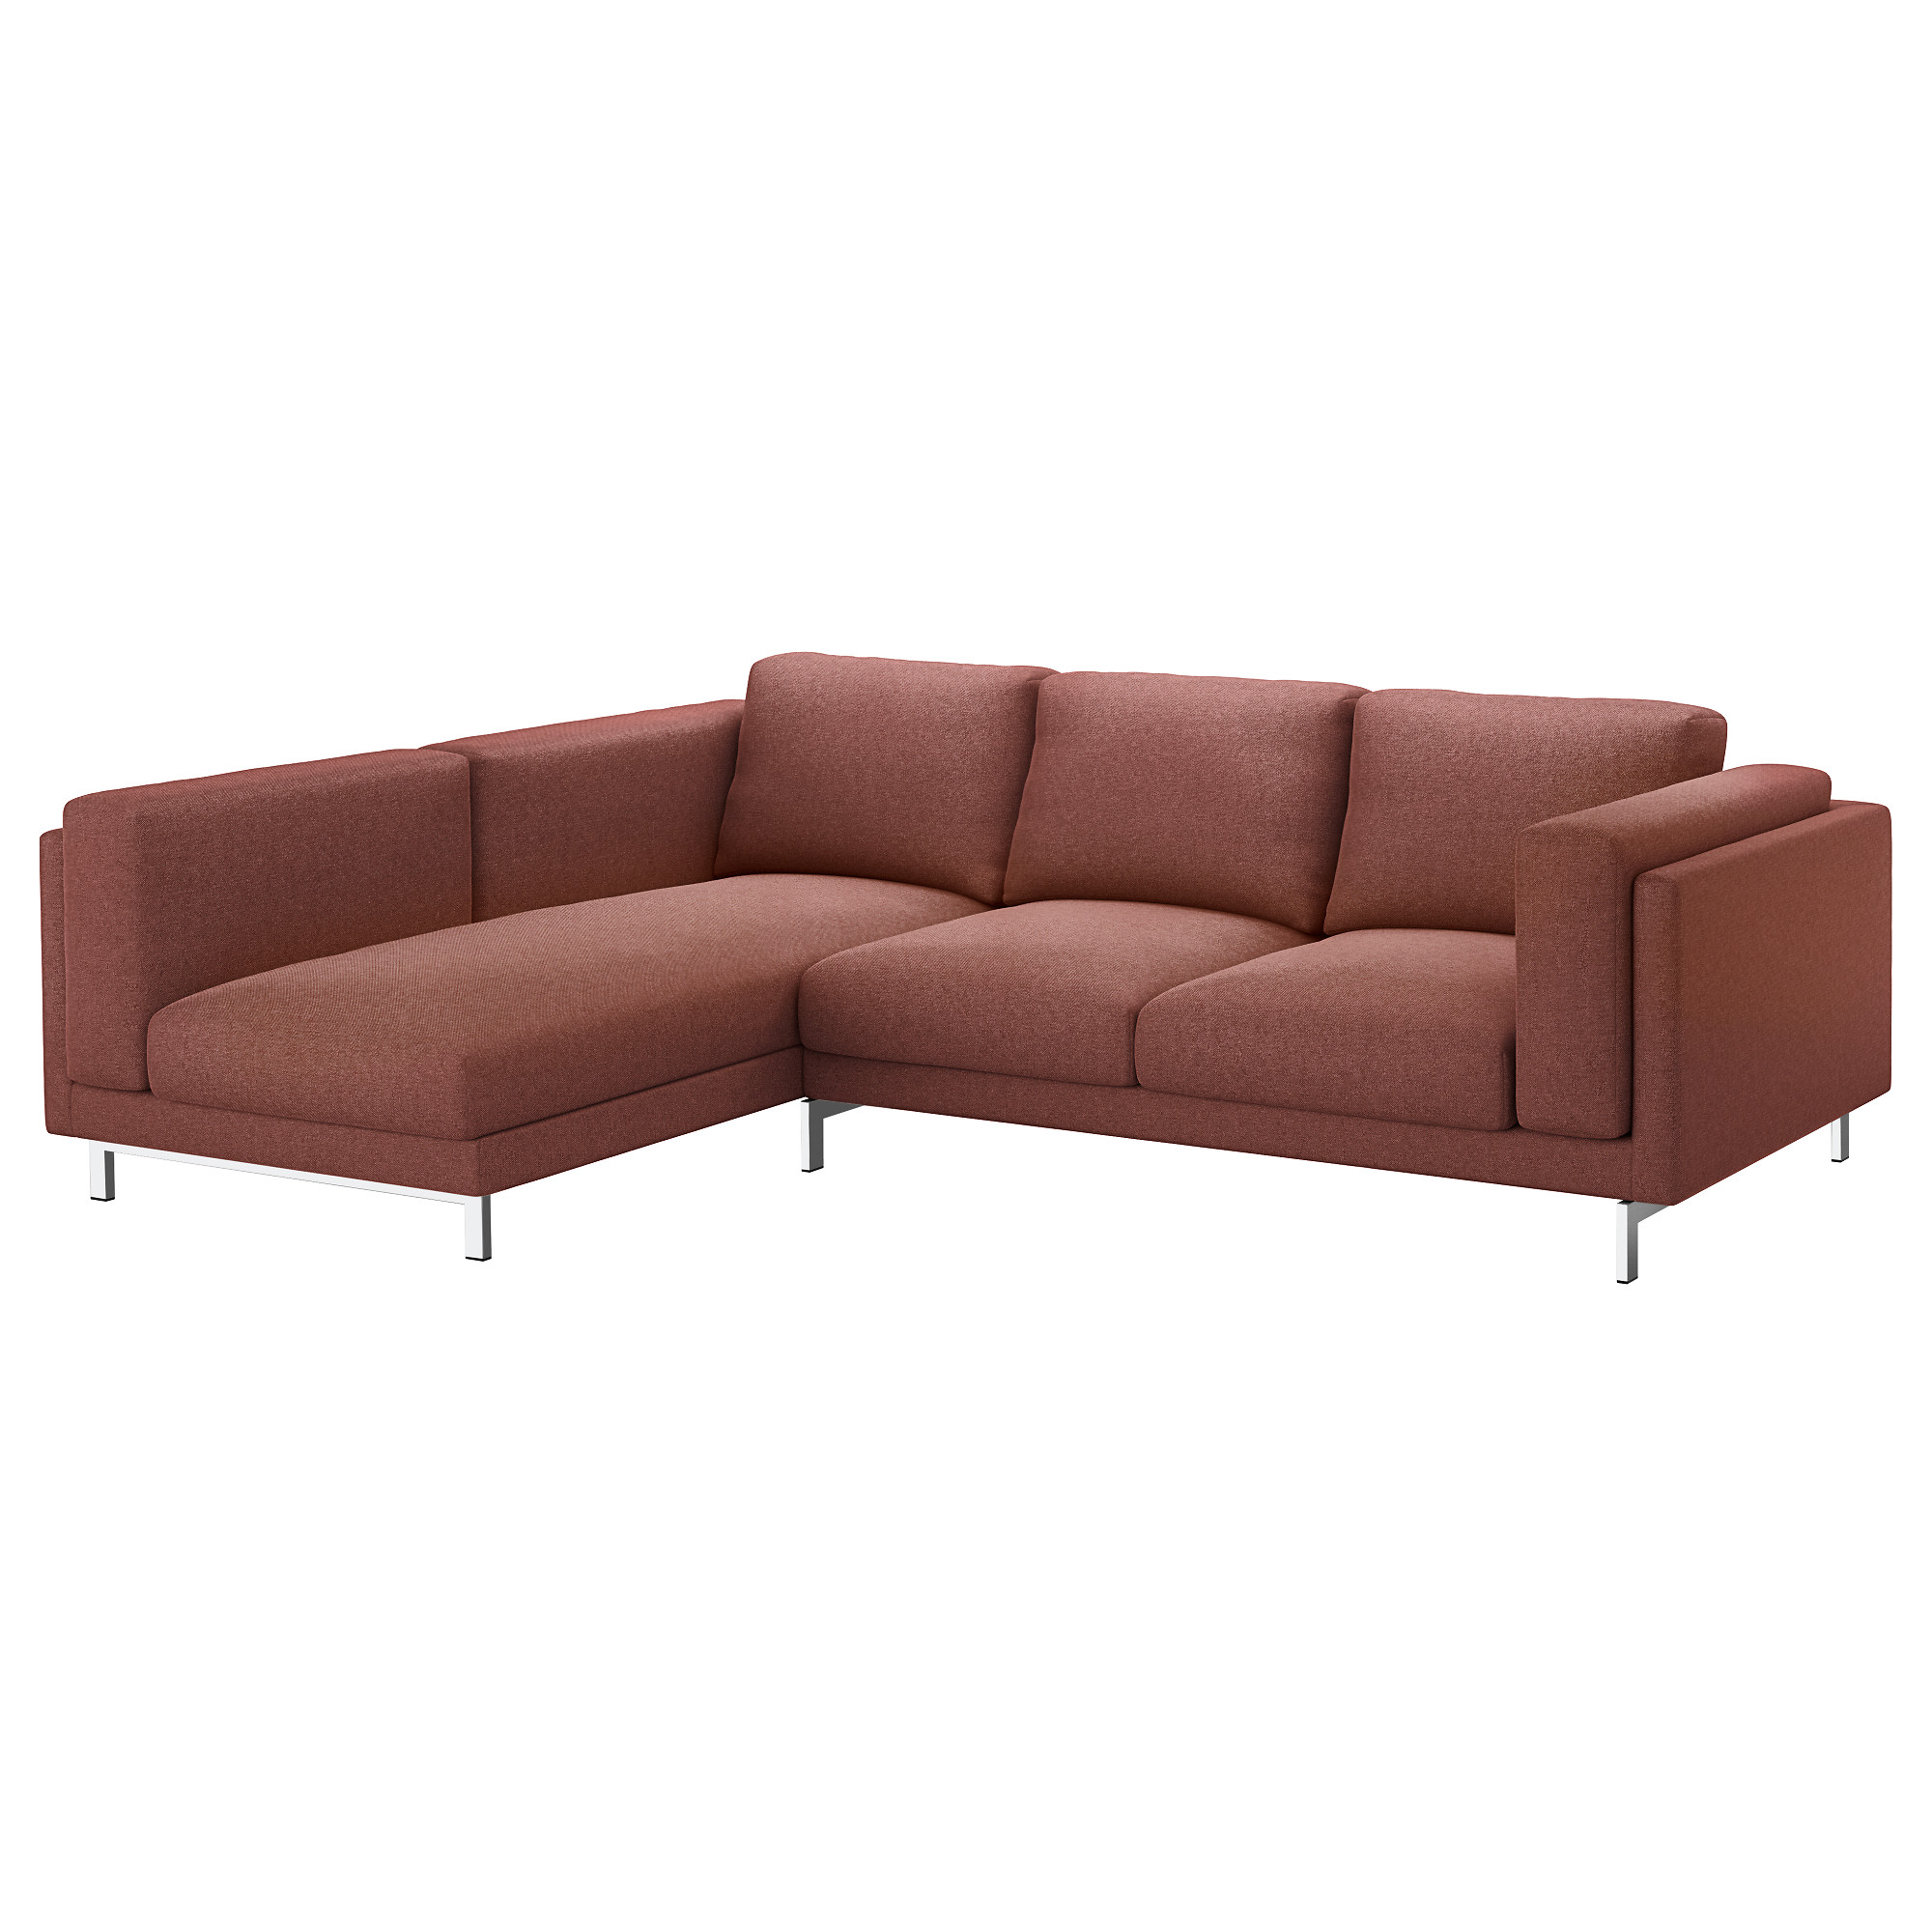 Genial NOCKEBY Sofa   With Chaise, Chrome Plated   IKEA